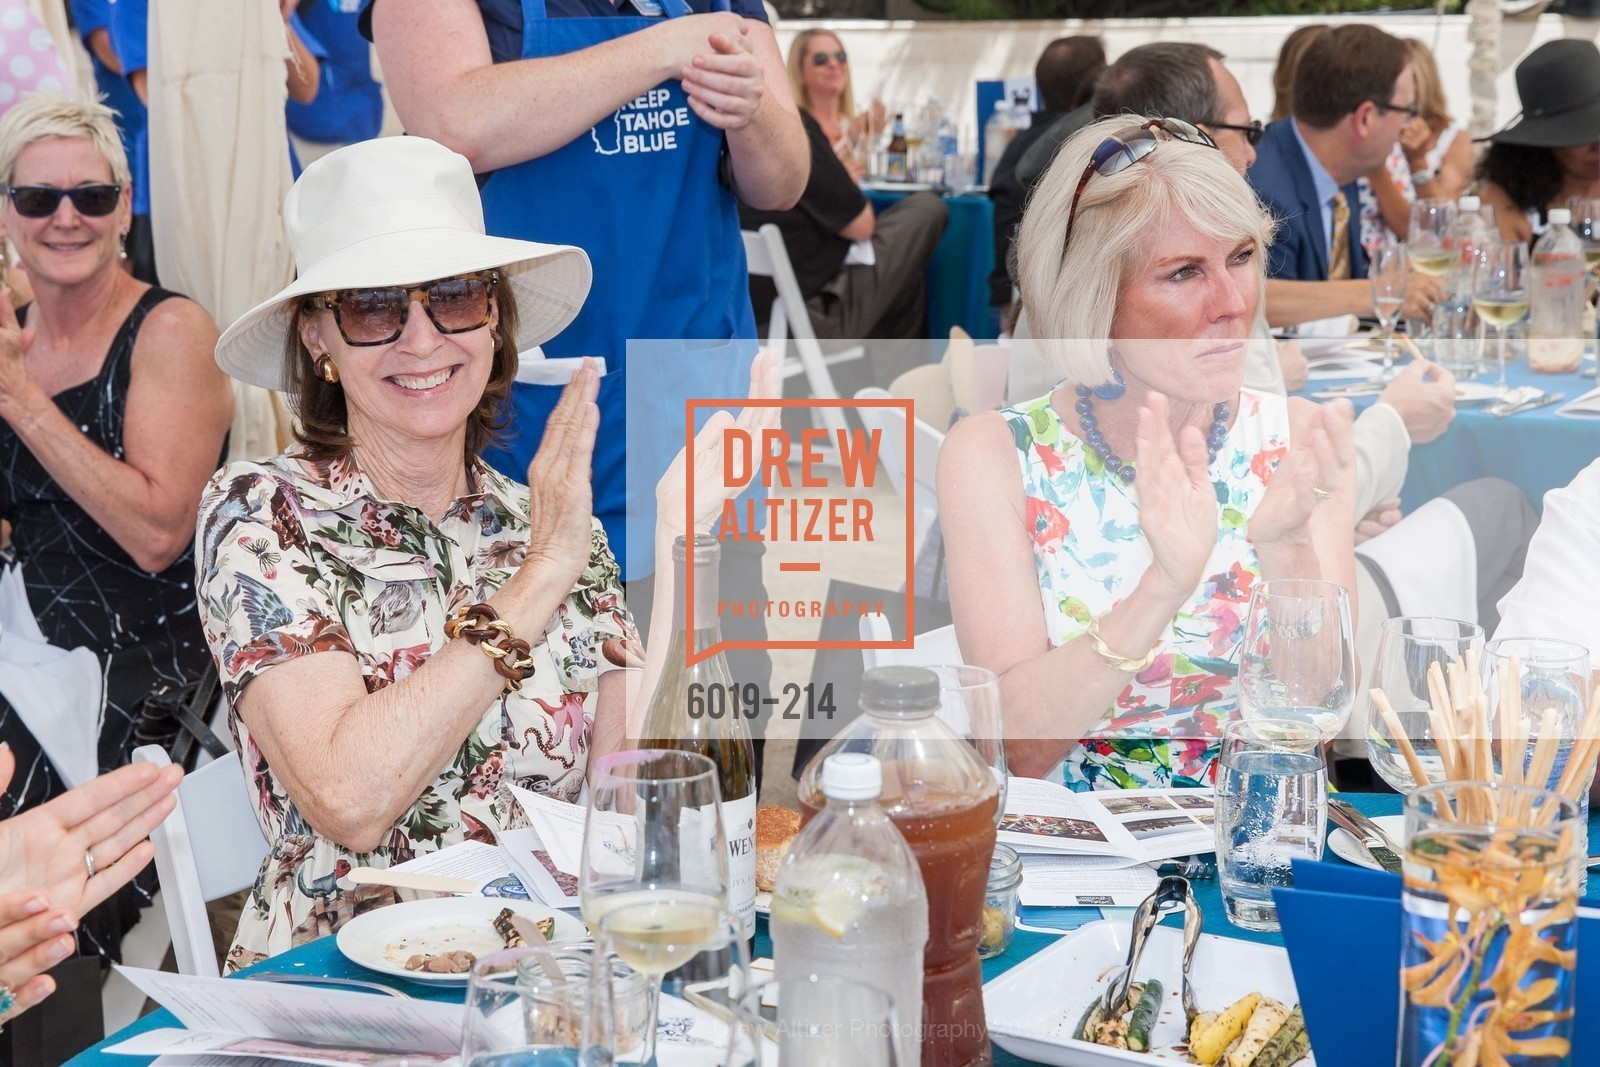 Virginia Barlage, Saks Fifth Avenue and The League to Save Lake Tahoe Present Fashion on the Lake, Private Residence, August 1st, 2015,Drew Altizer, Drew Altizer Photography, full-service agency, private events, San Francisco photographer, photographer california